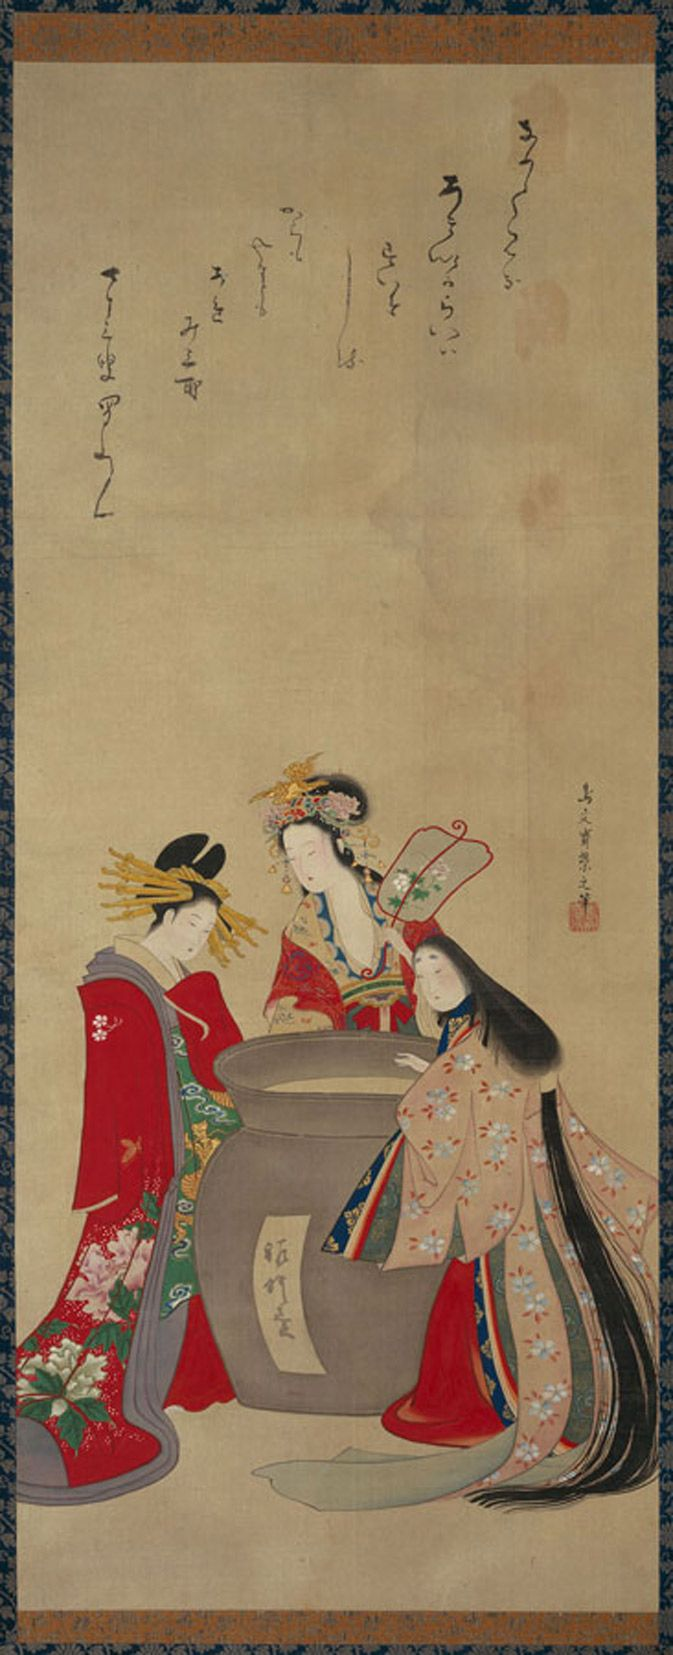 Color in japanese art - Parody Of The Three Vinegar Tasters Mitate Sanzan Zu Japanese Edo Period About 1821 Bunsei Ch Bunsai Eishi Japanese Inscribed By Ta Nanpo